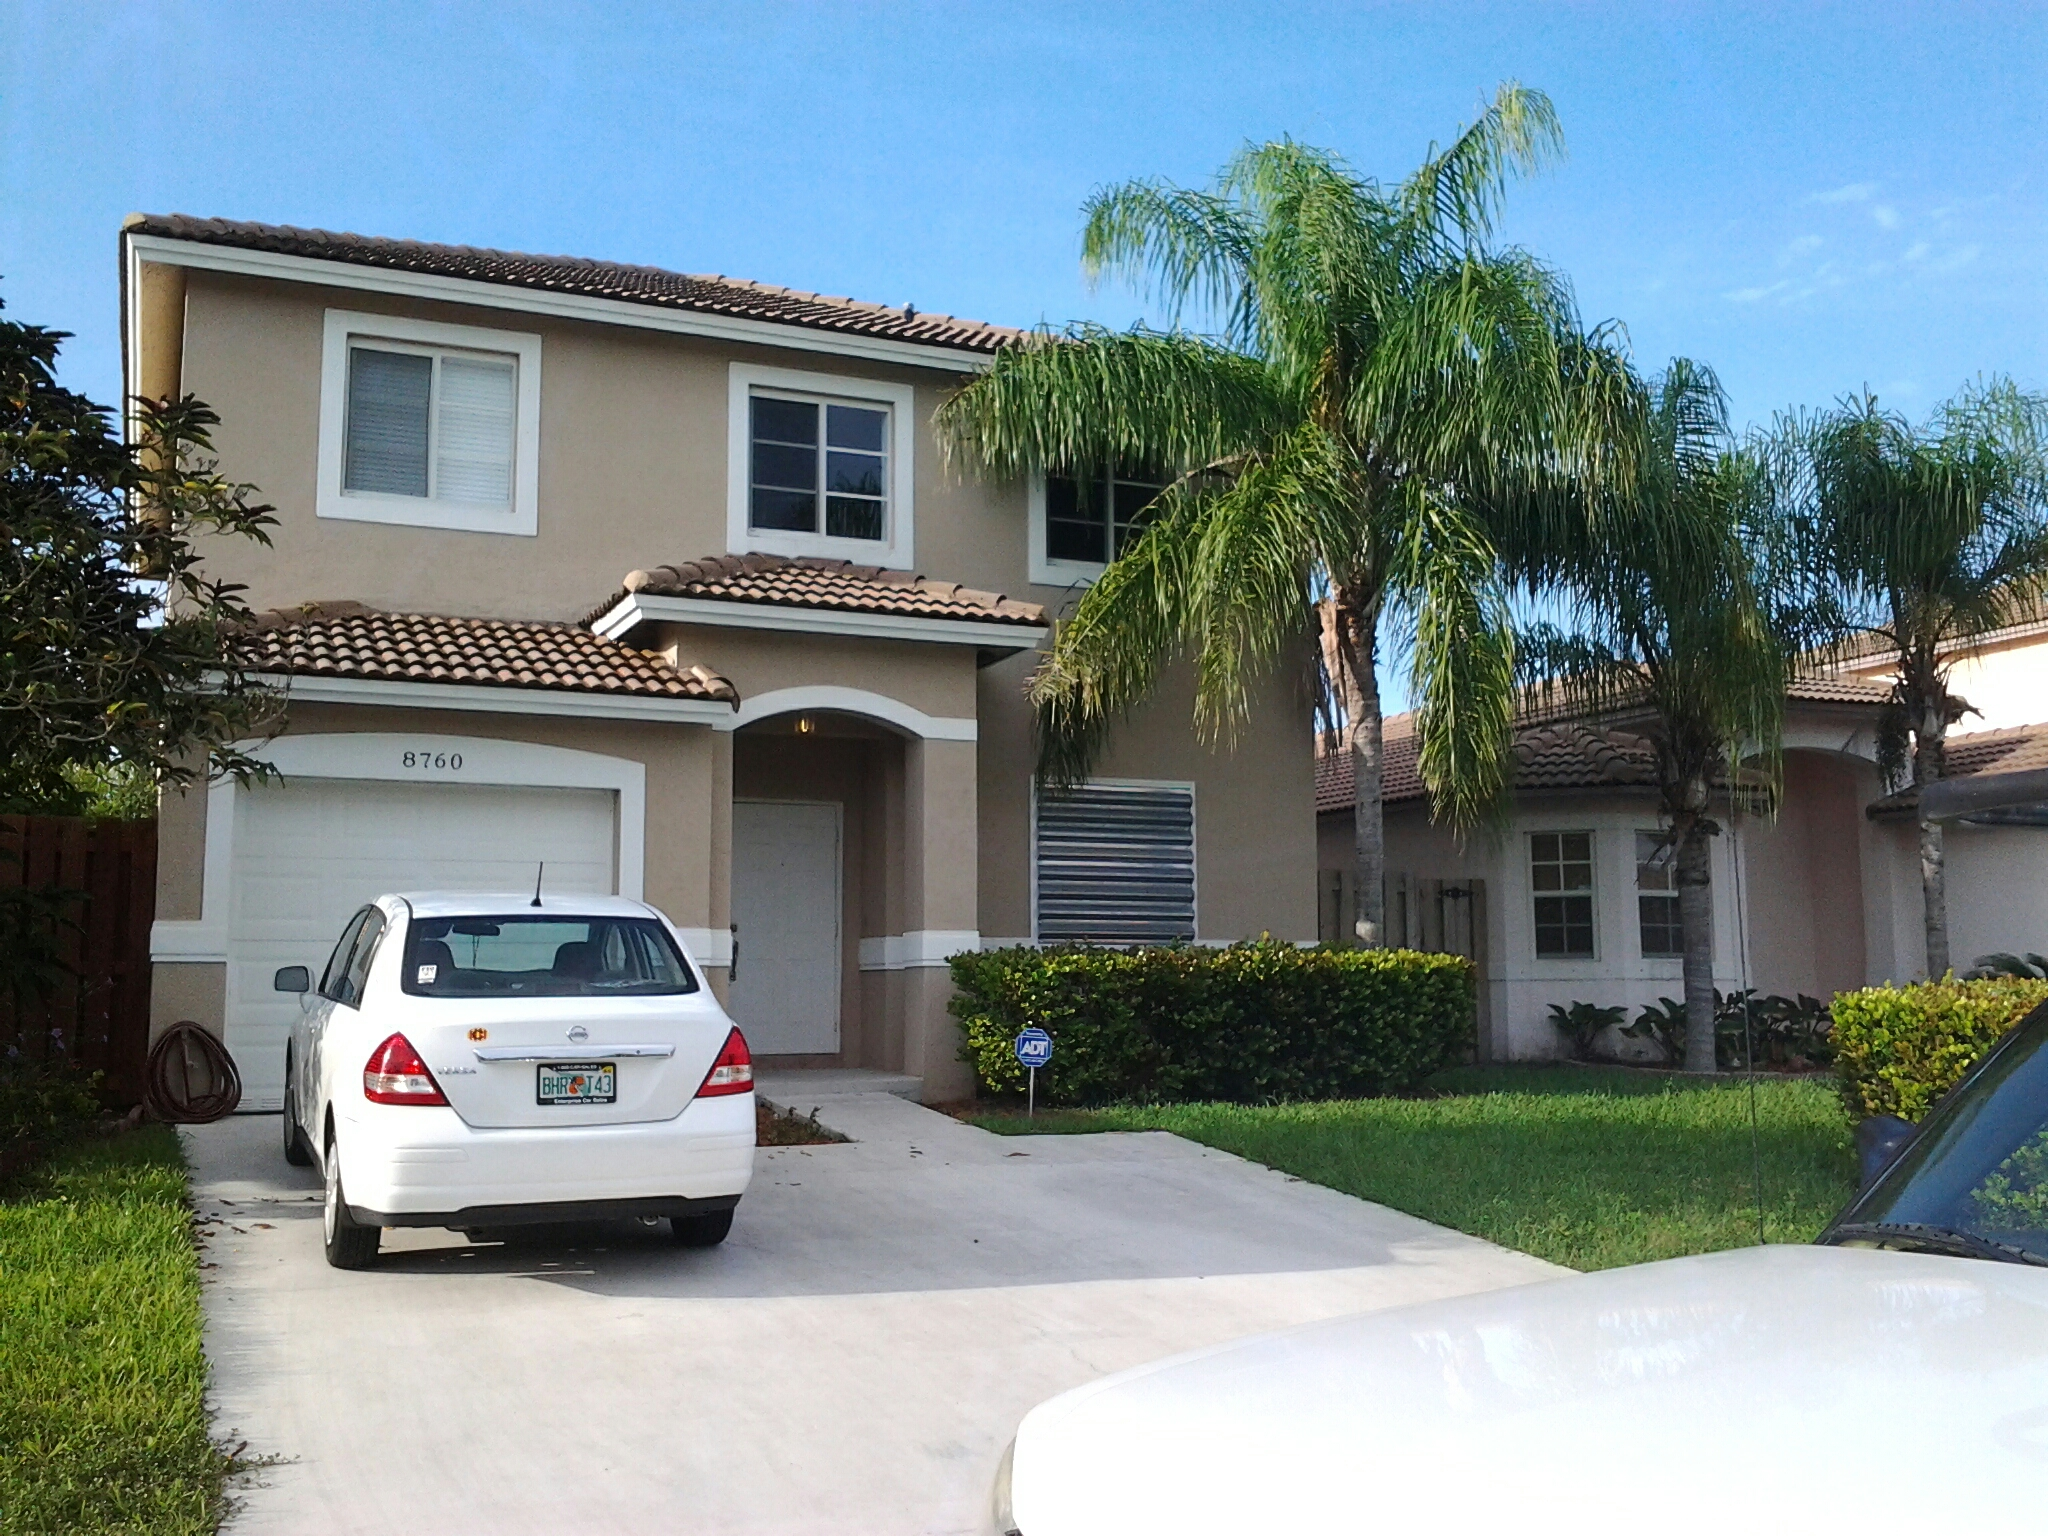 Cutler Bay, FL - Tile roof repair in the city of Cutler Bay Florida done by Earl W Johnston roofing company repair technicians are Tony and Jose